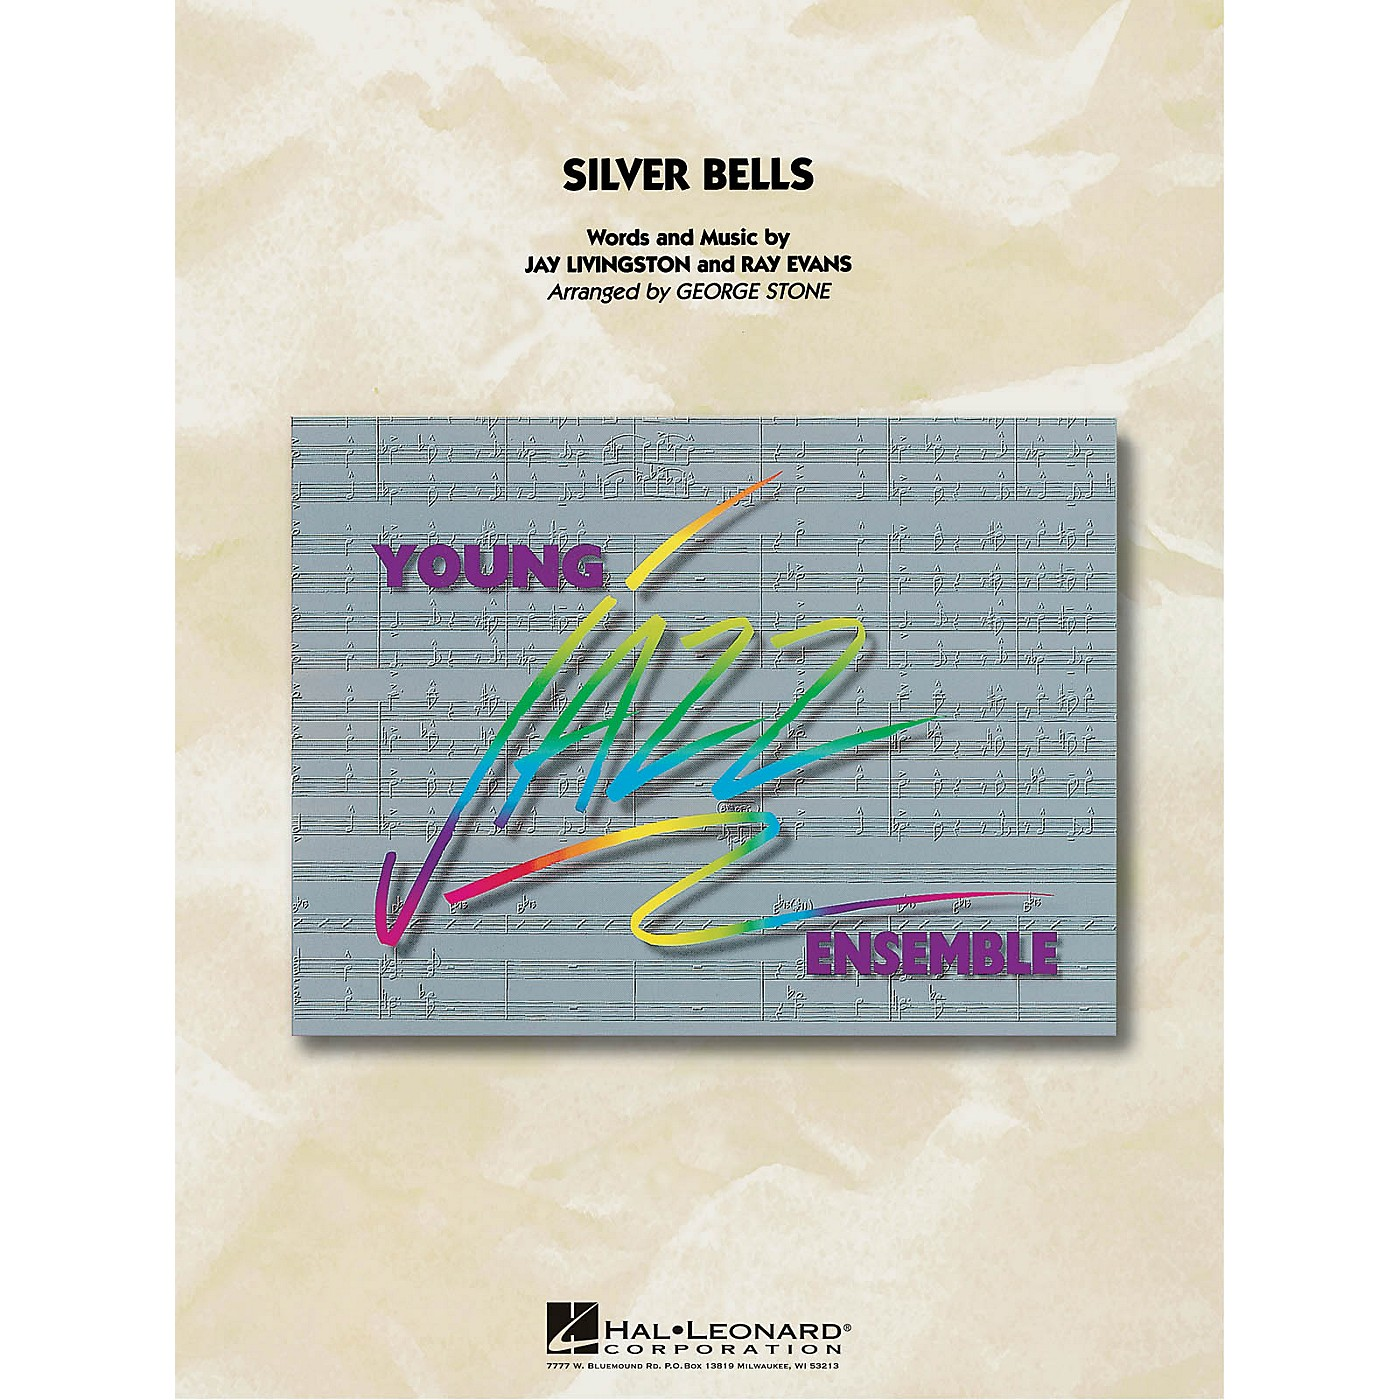 Hal Leonard Silver Bells Jazz Band Level 3 Arranged by George Stone thumbnail